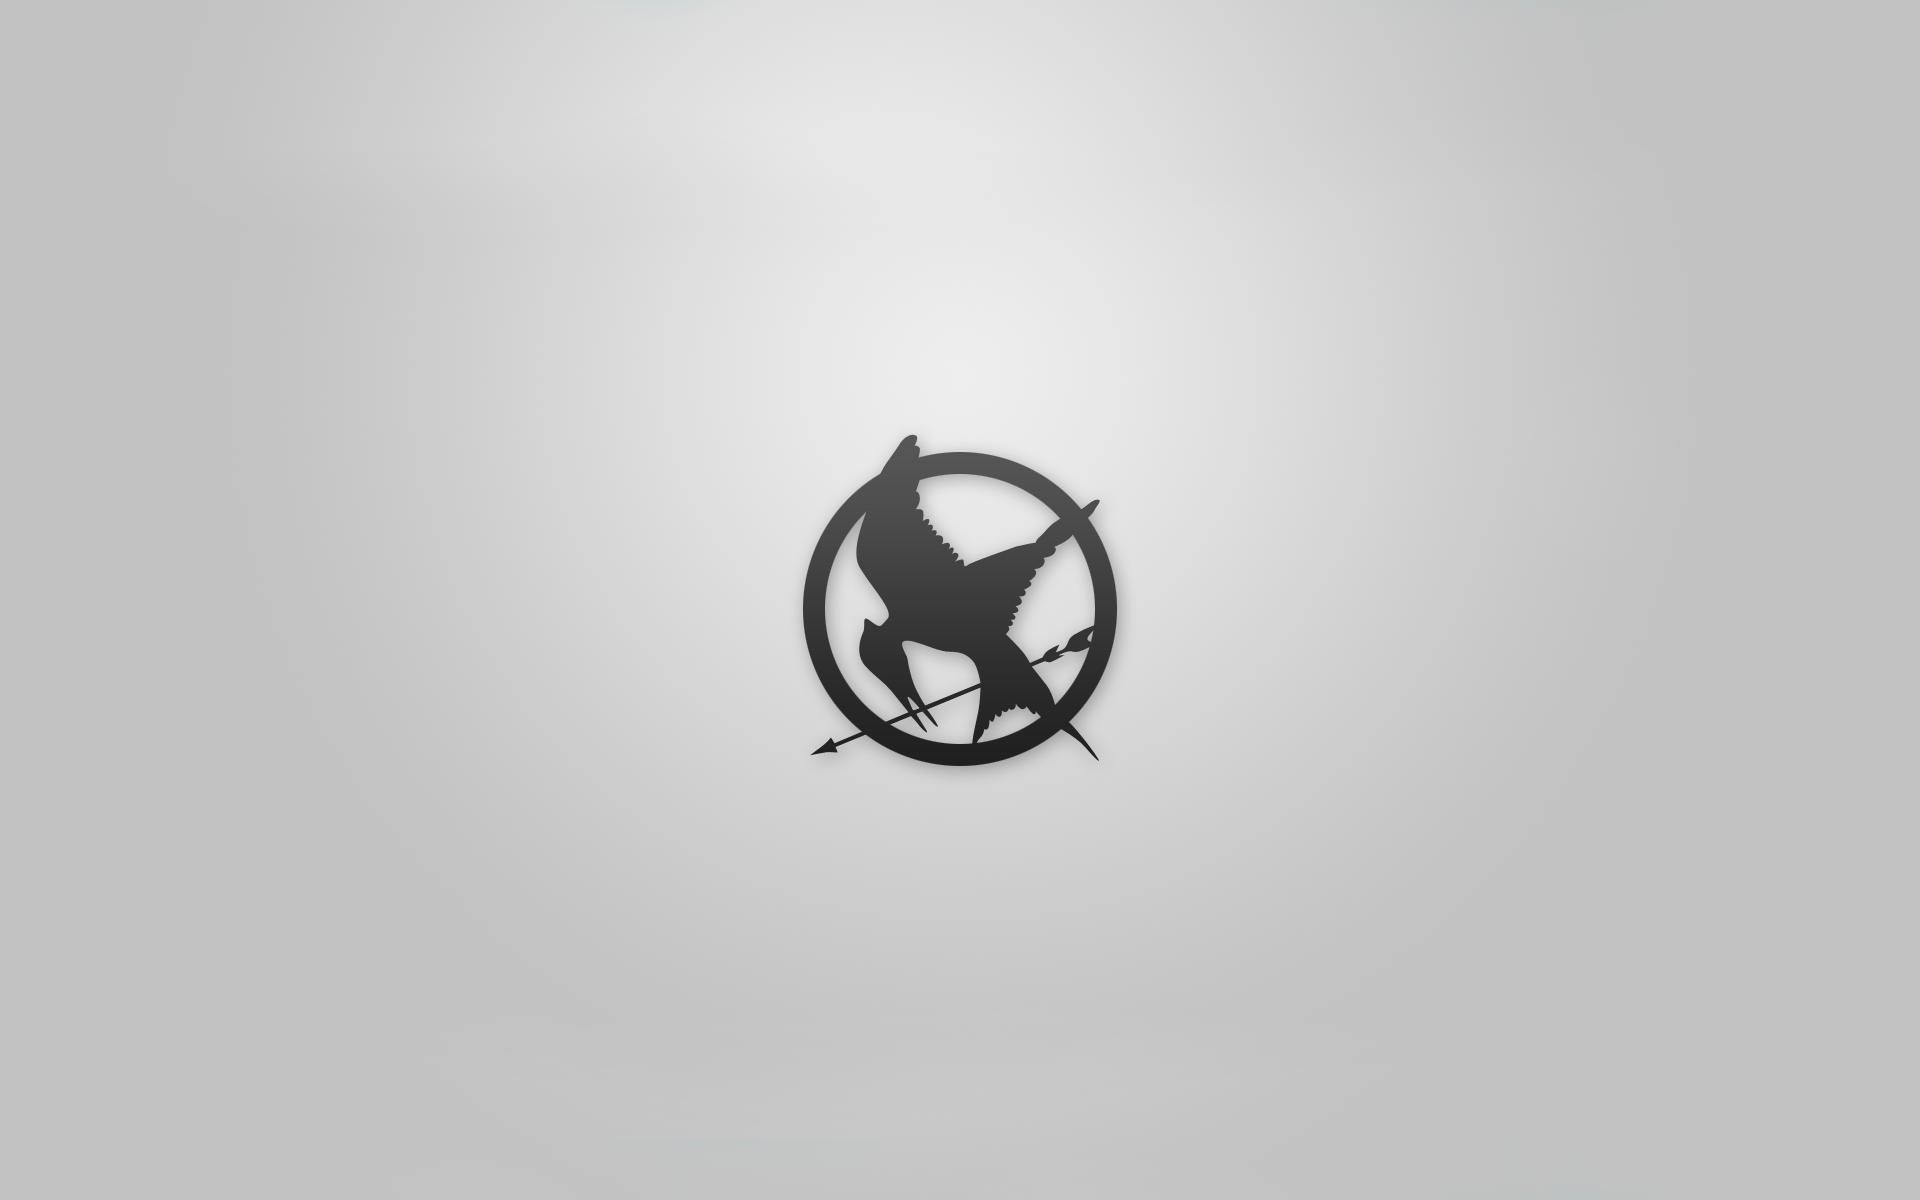 1920x1200 The Hunger Games Wallpapers